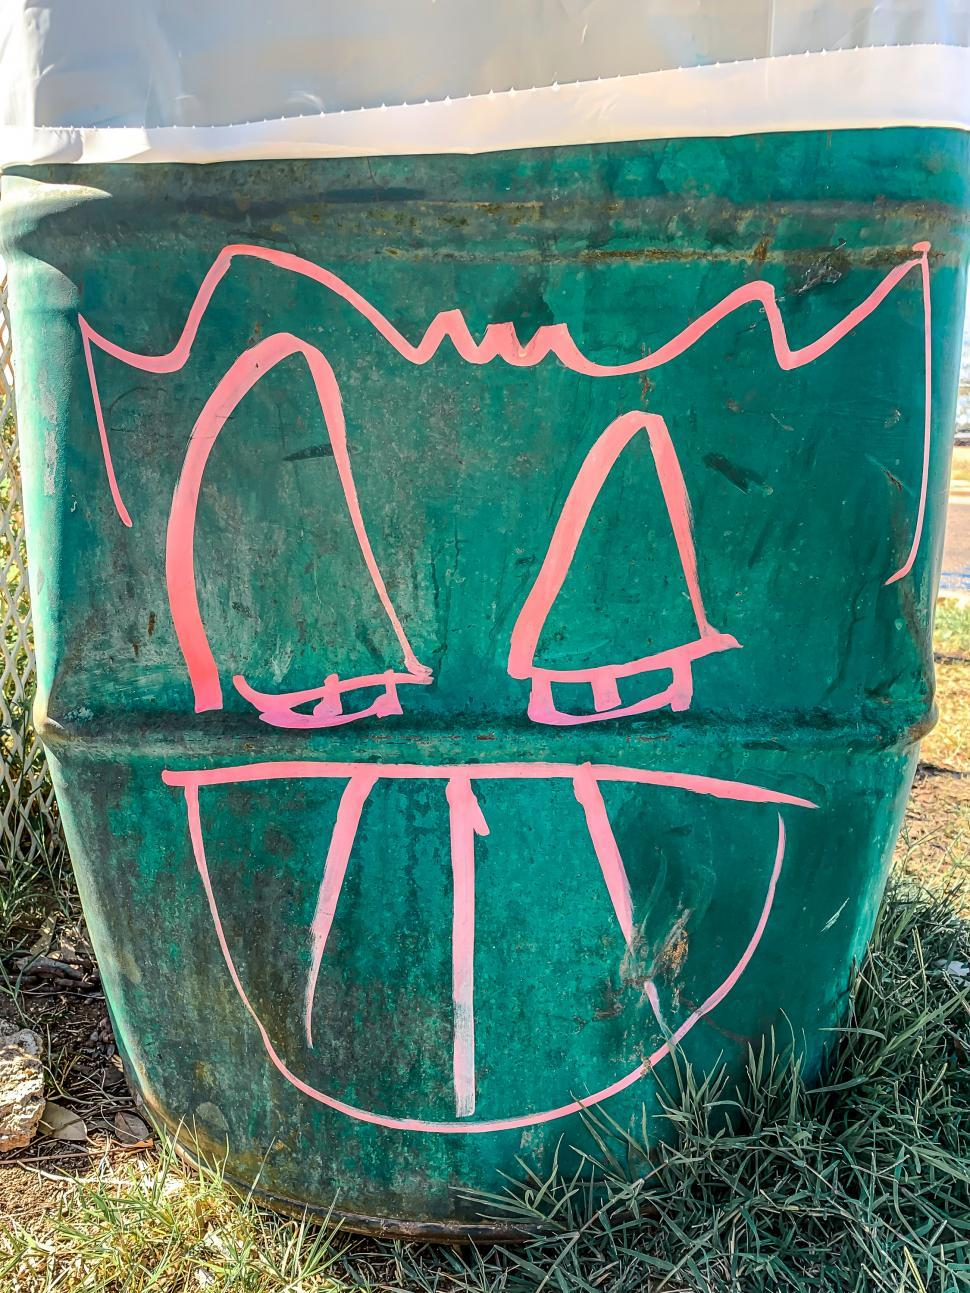 Download Free Stock HD Photo of Strange Smiliing Face on Garbage Can Online